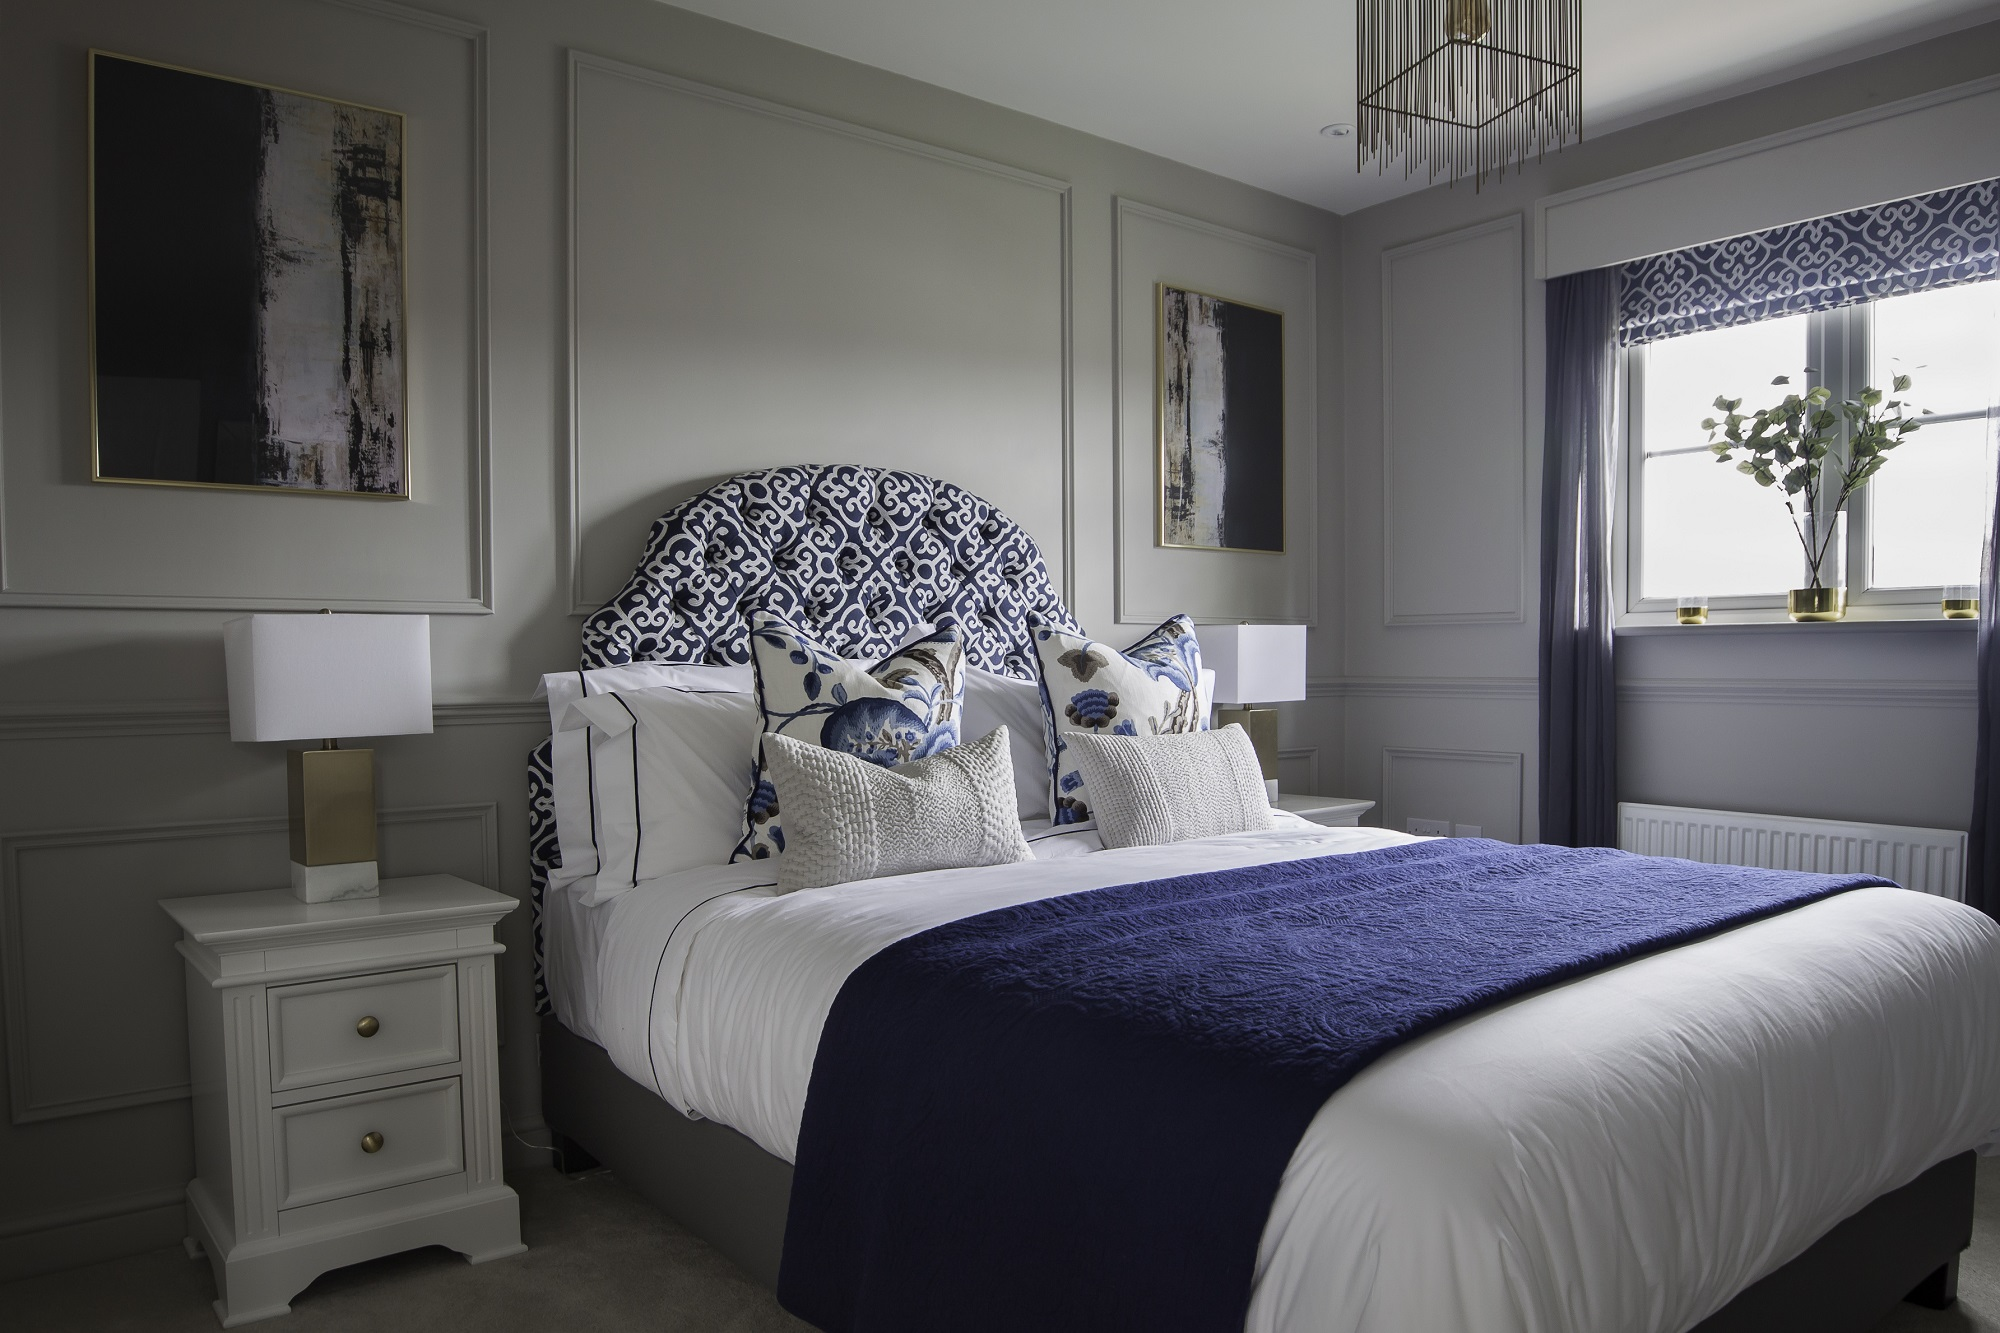 Home Design Bedroom Bedroom Ideas 52 Modern Design Ideas For Your Bedroom The Luxpad